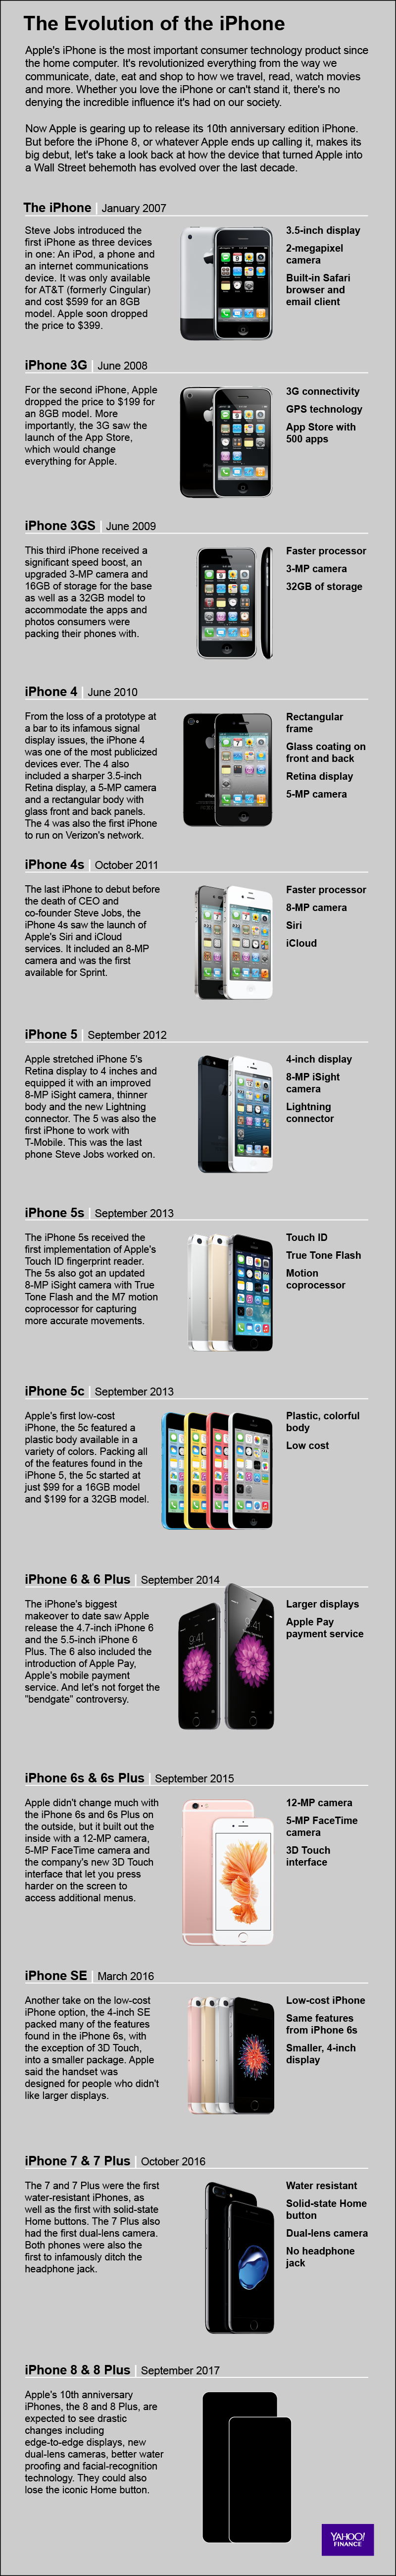 the evolution of the iphone and how it took the market by storm Apple iphone device market share worldwide by model from 2015 to 2017 share of iphone installed base worldwide by model 2015-2017 statista for your company.